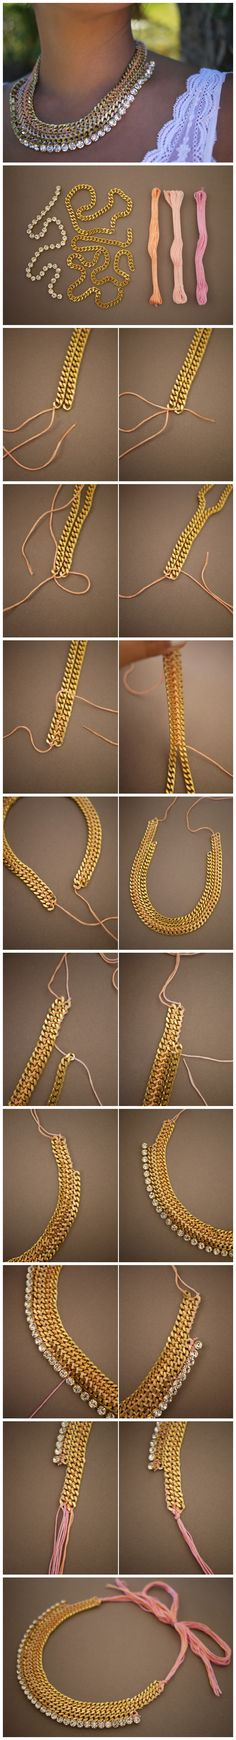 #weave #chains #string #necklace